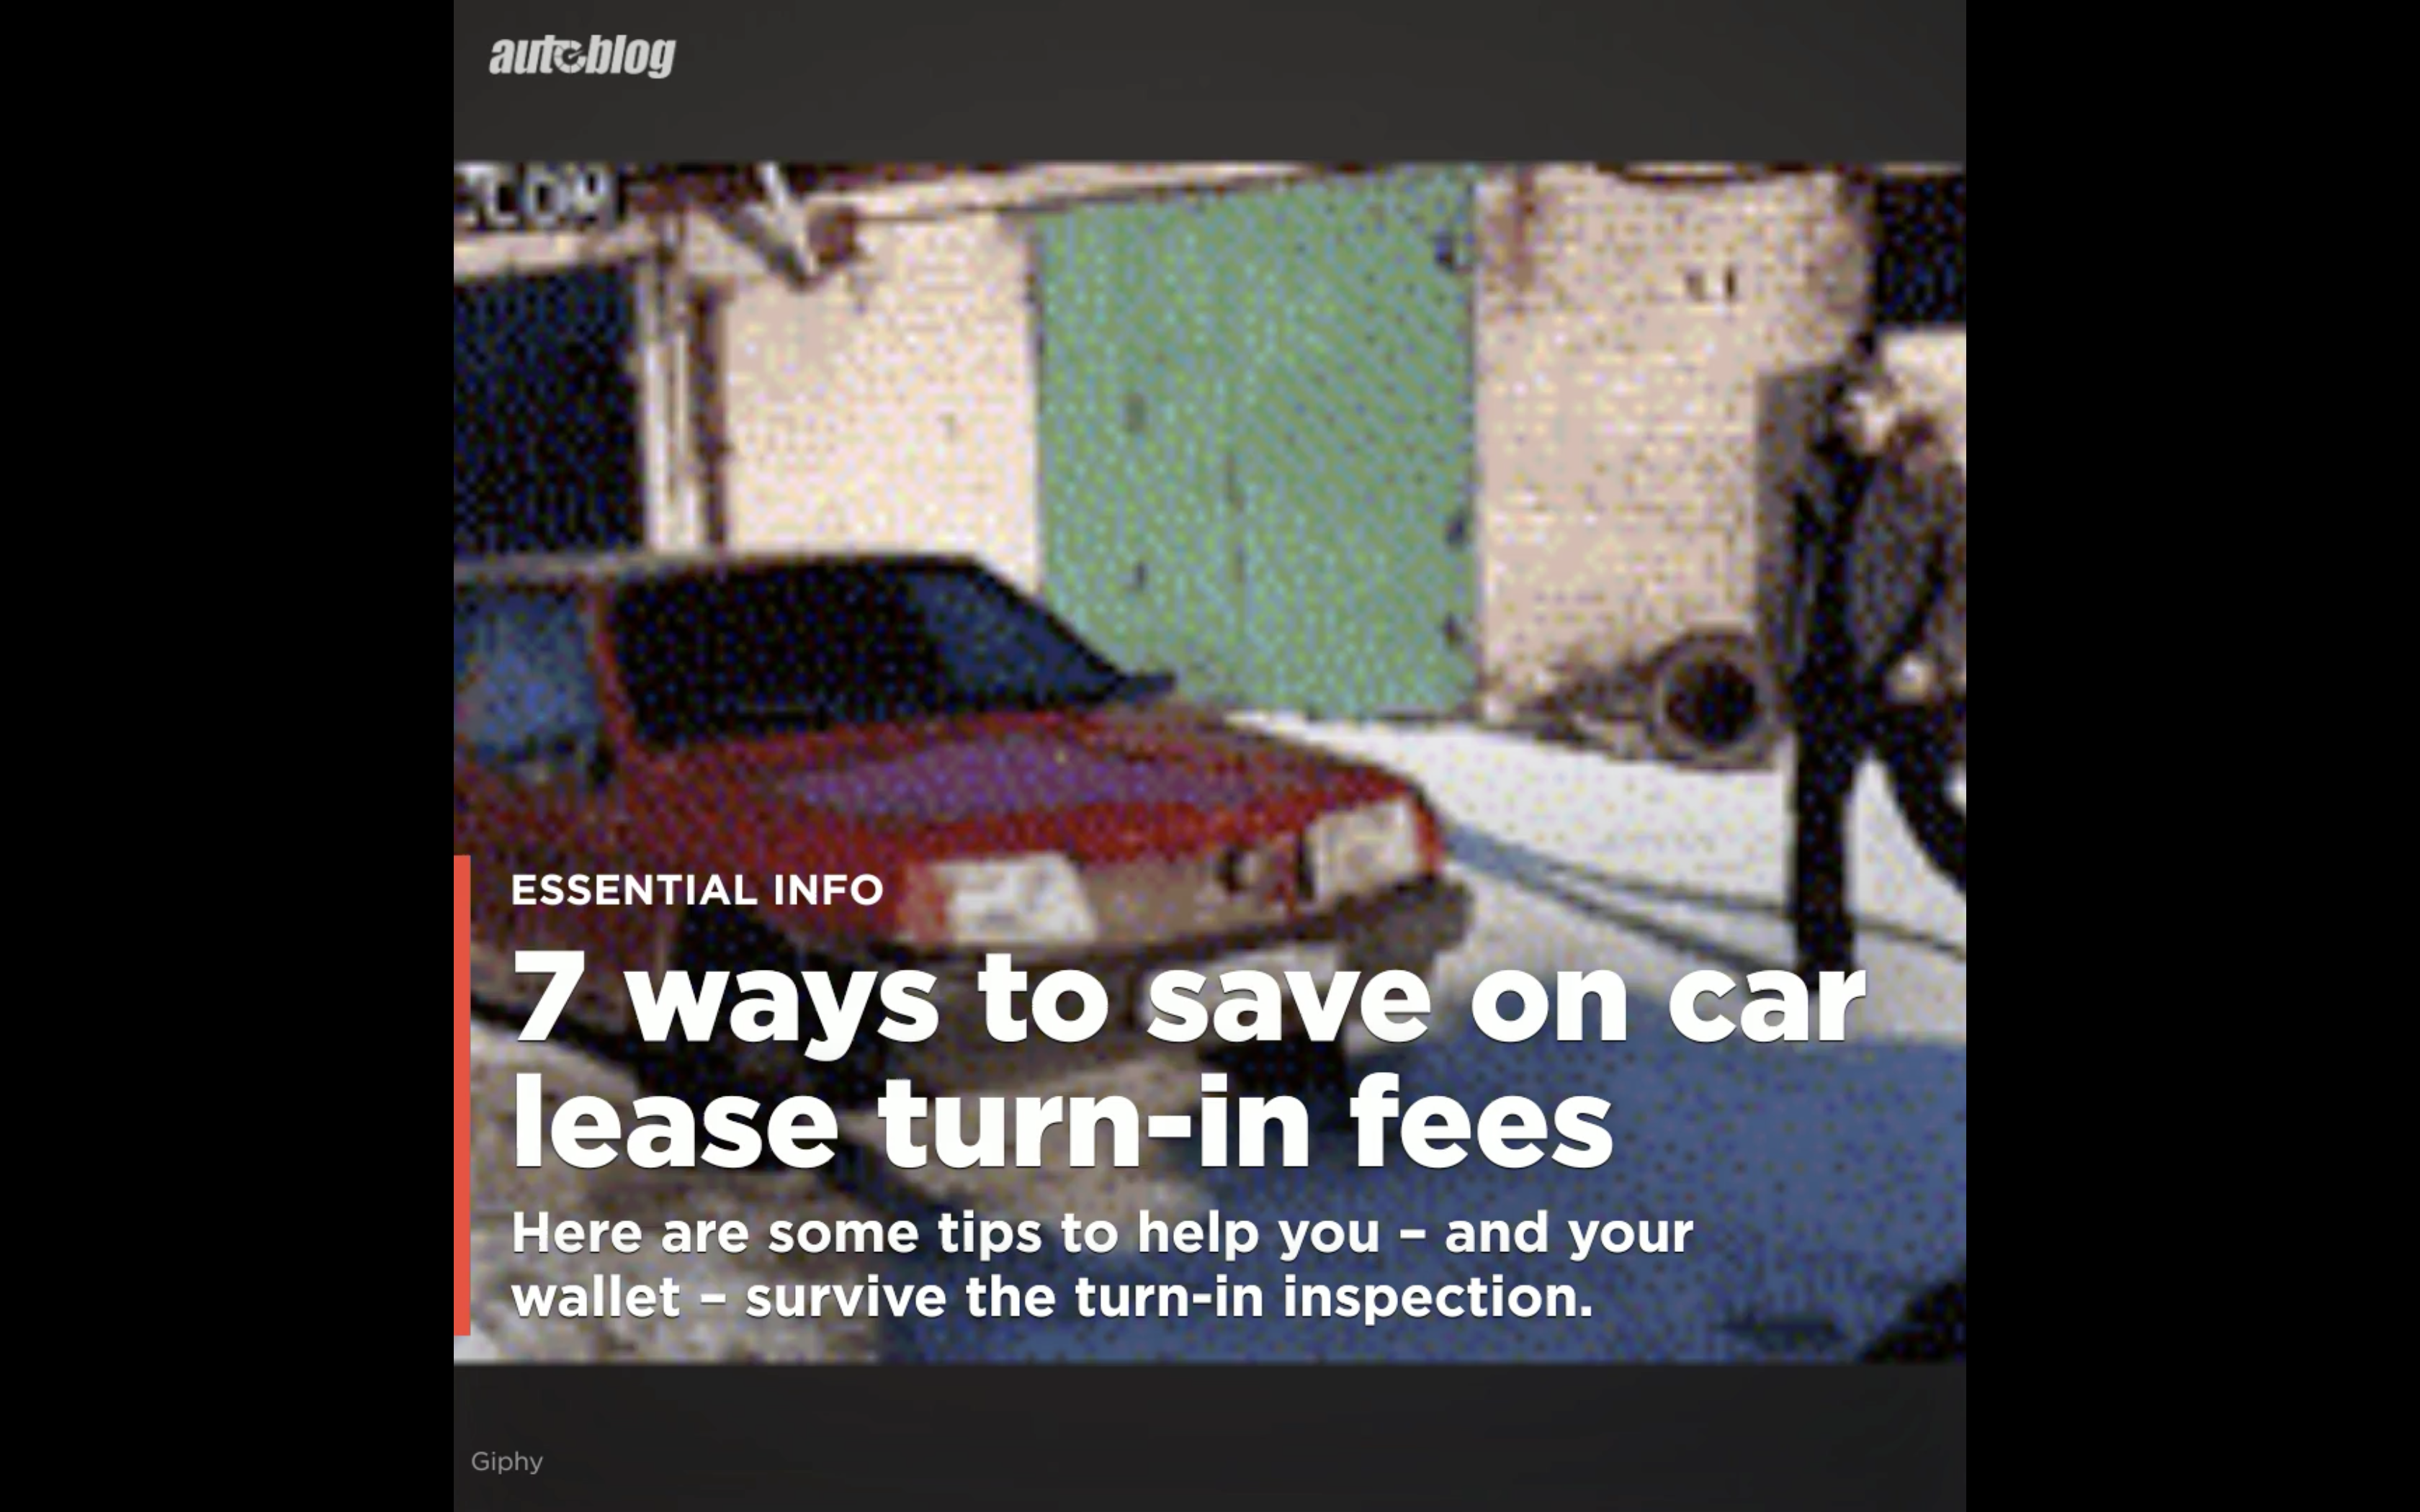 7 ways to save on car lease turn-in fees